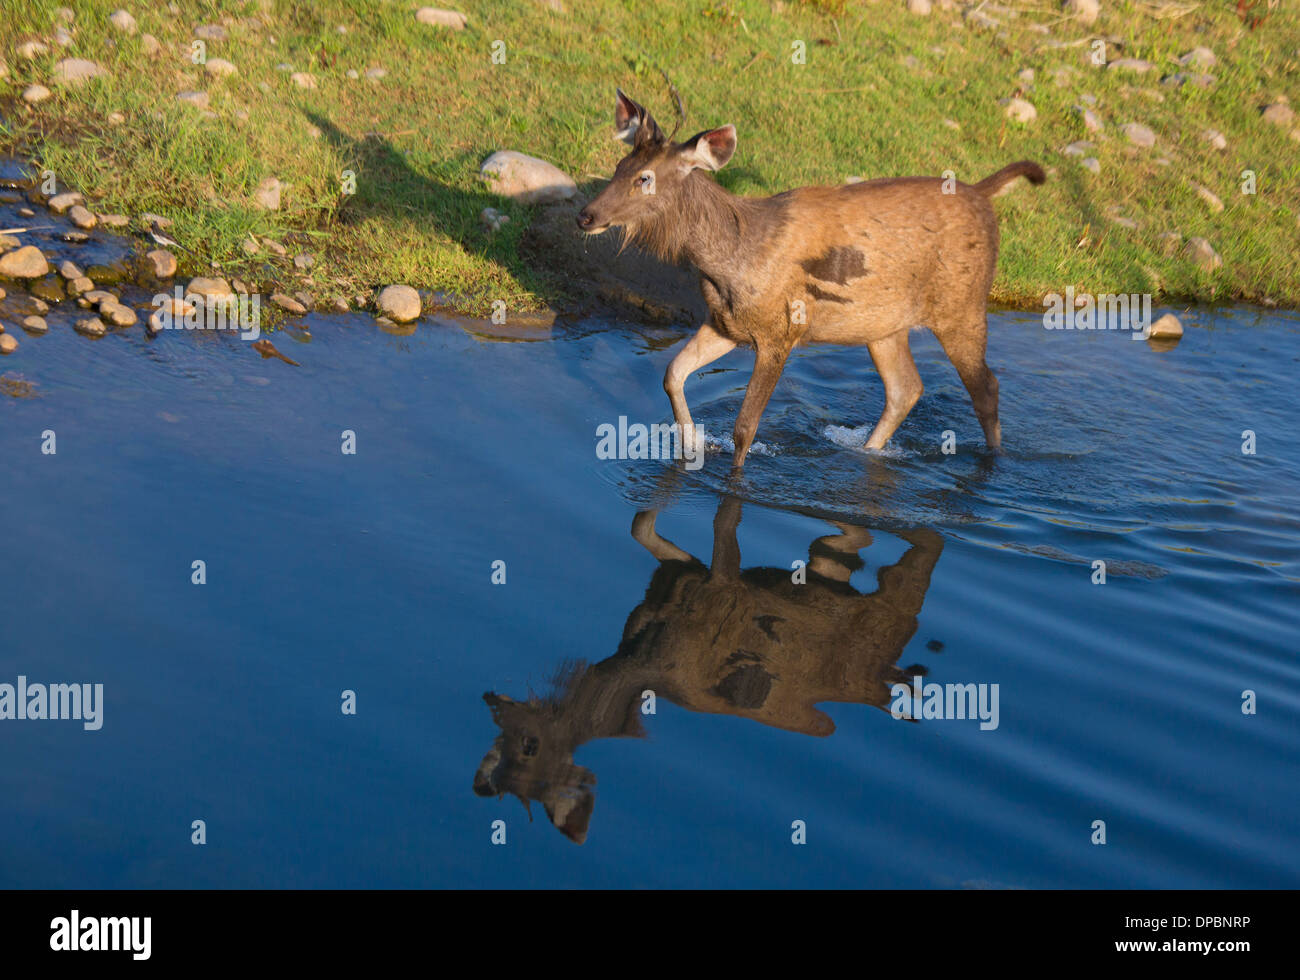 Sambar Deer - photographed at Corbett National Park (India) - Stock Image